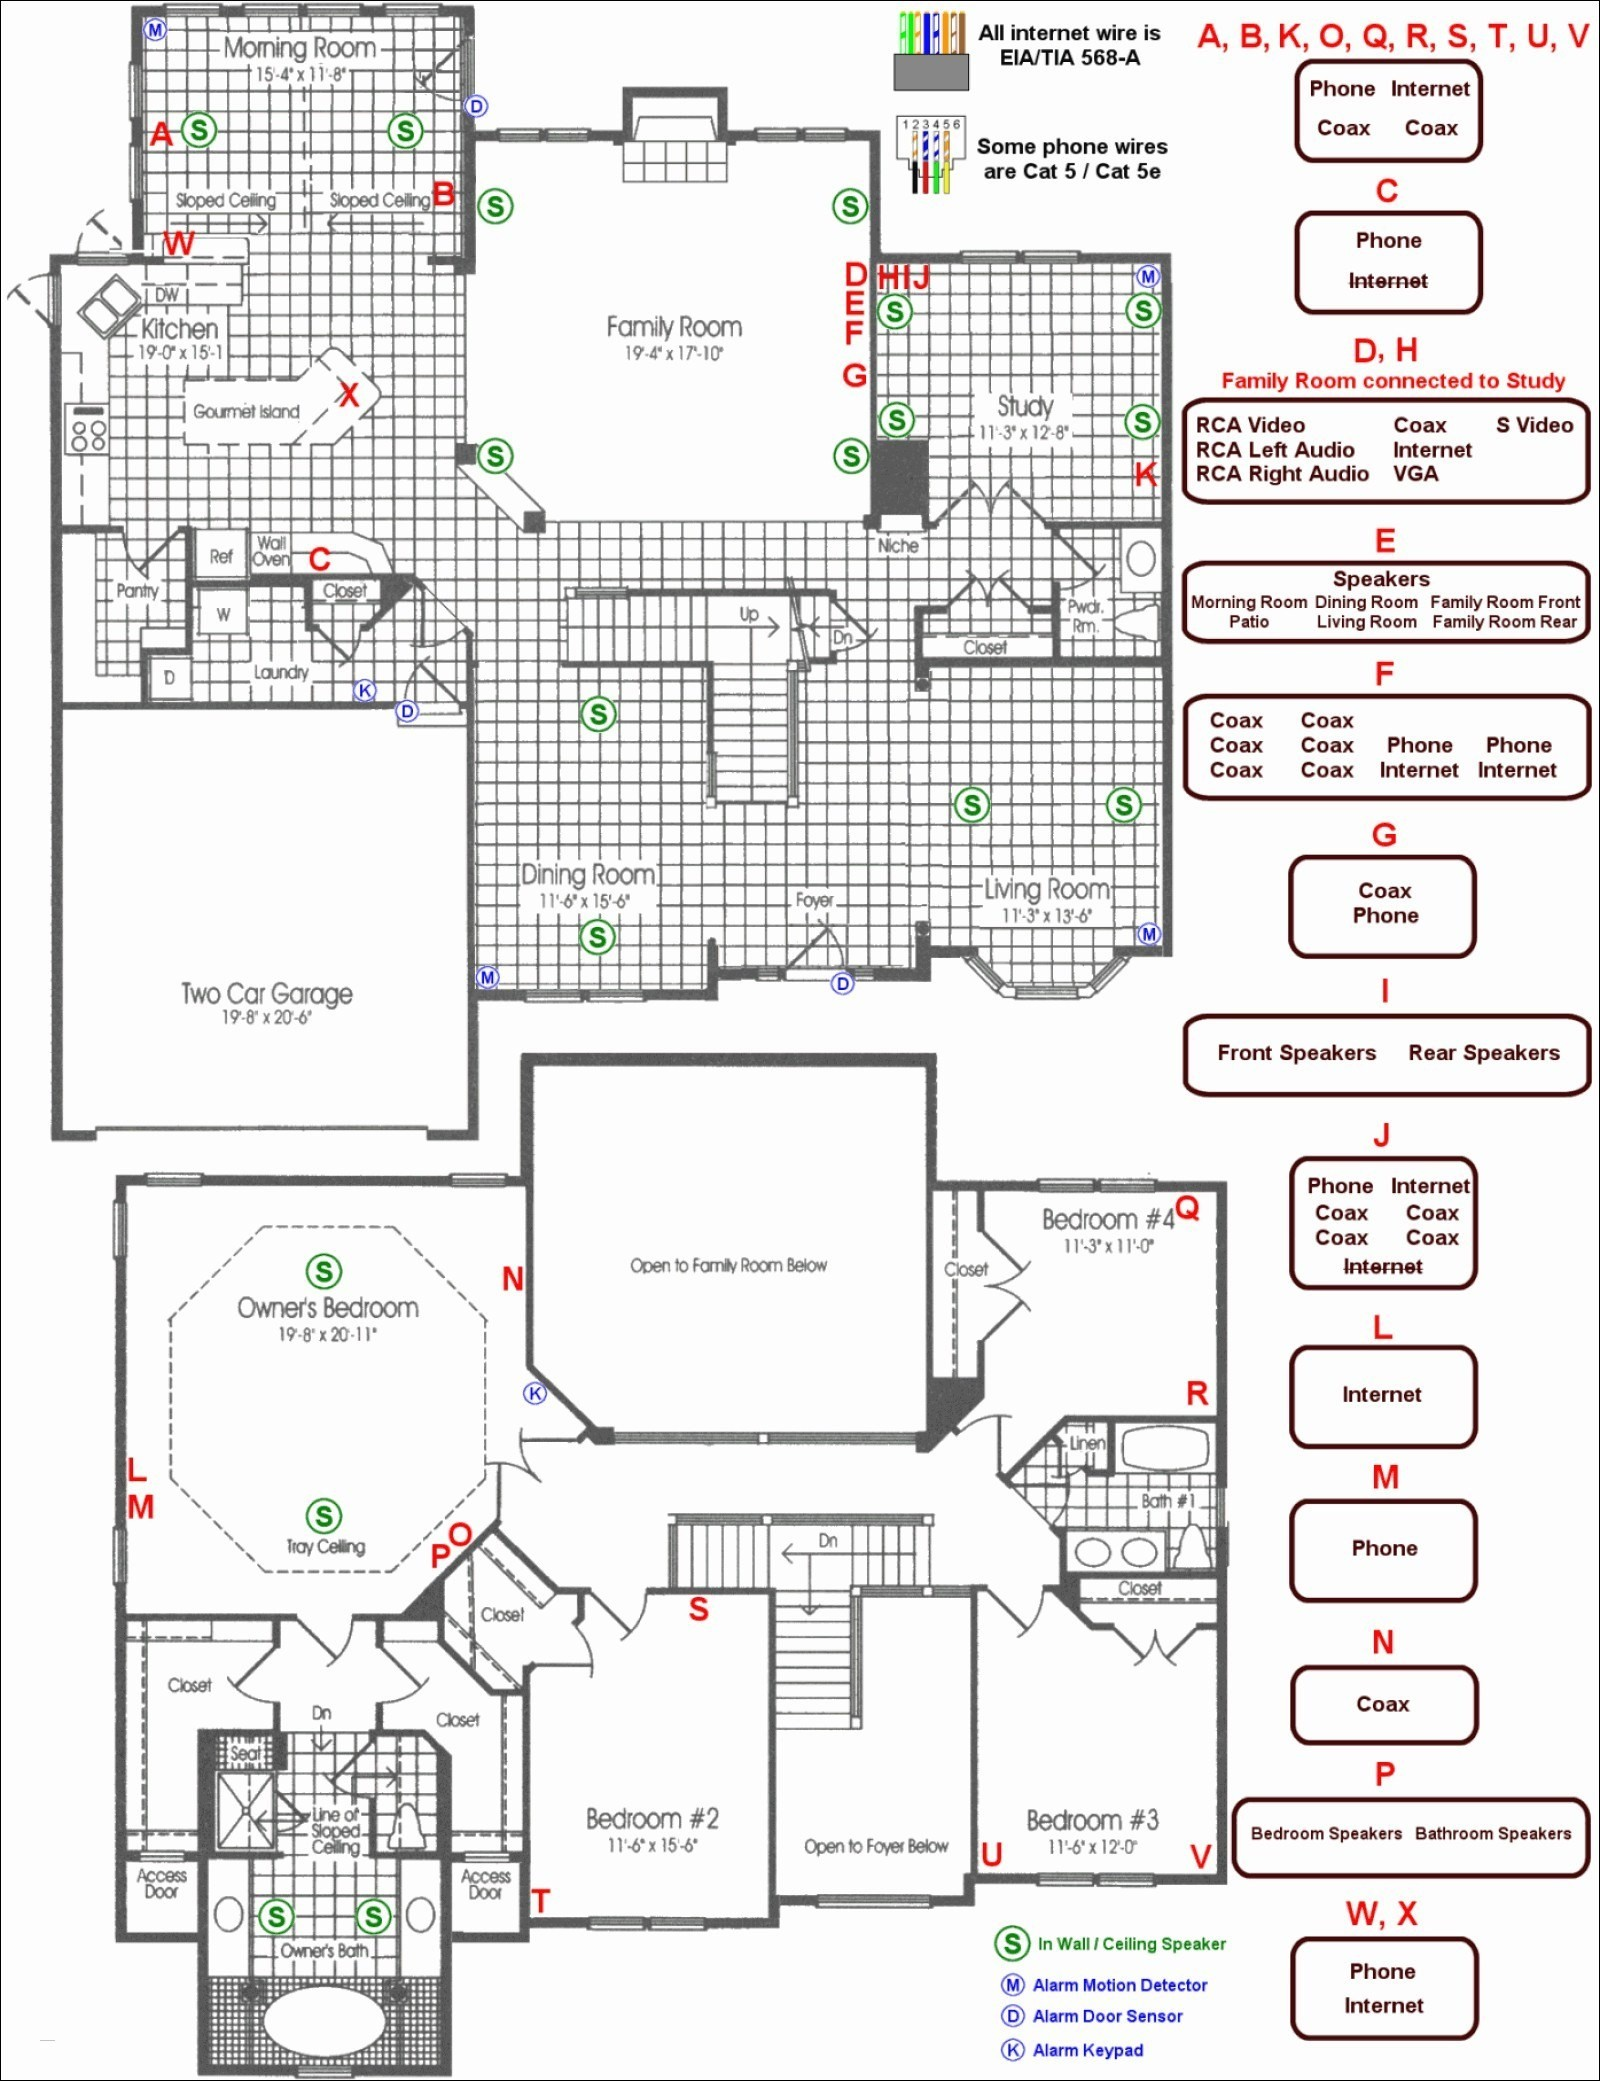 basic house wiring diagram Collection home wiring diagram Collection Aktive Crossoverfrequenzweiche Mit Max4478 360customs Crossover